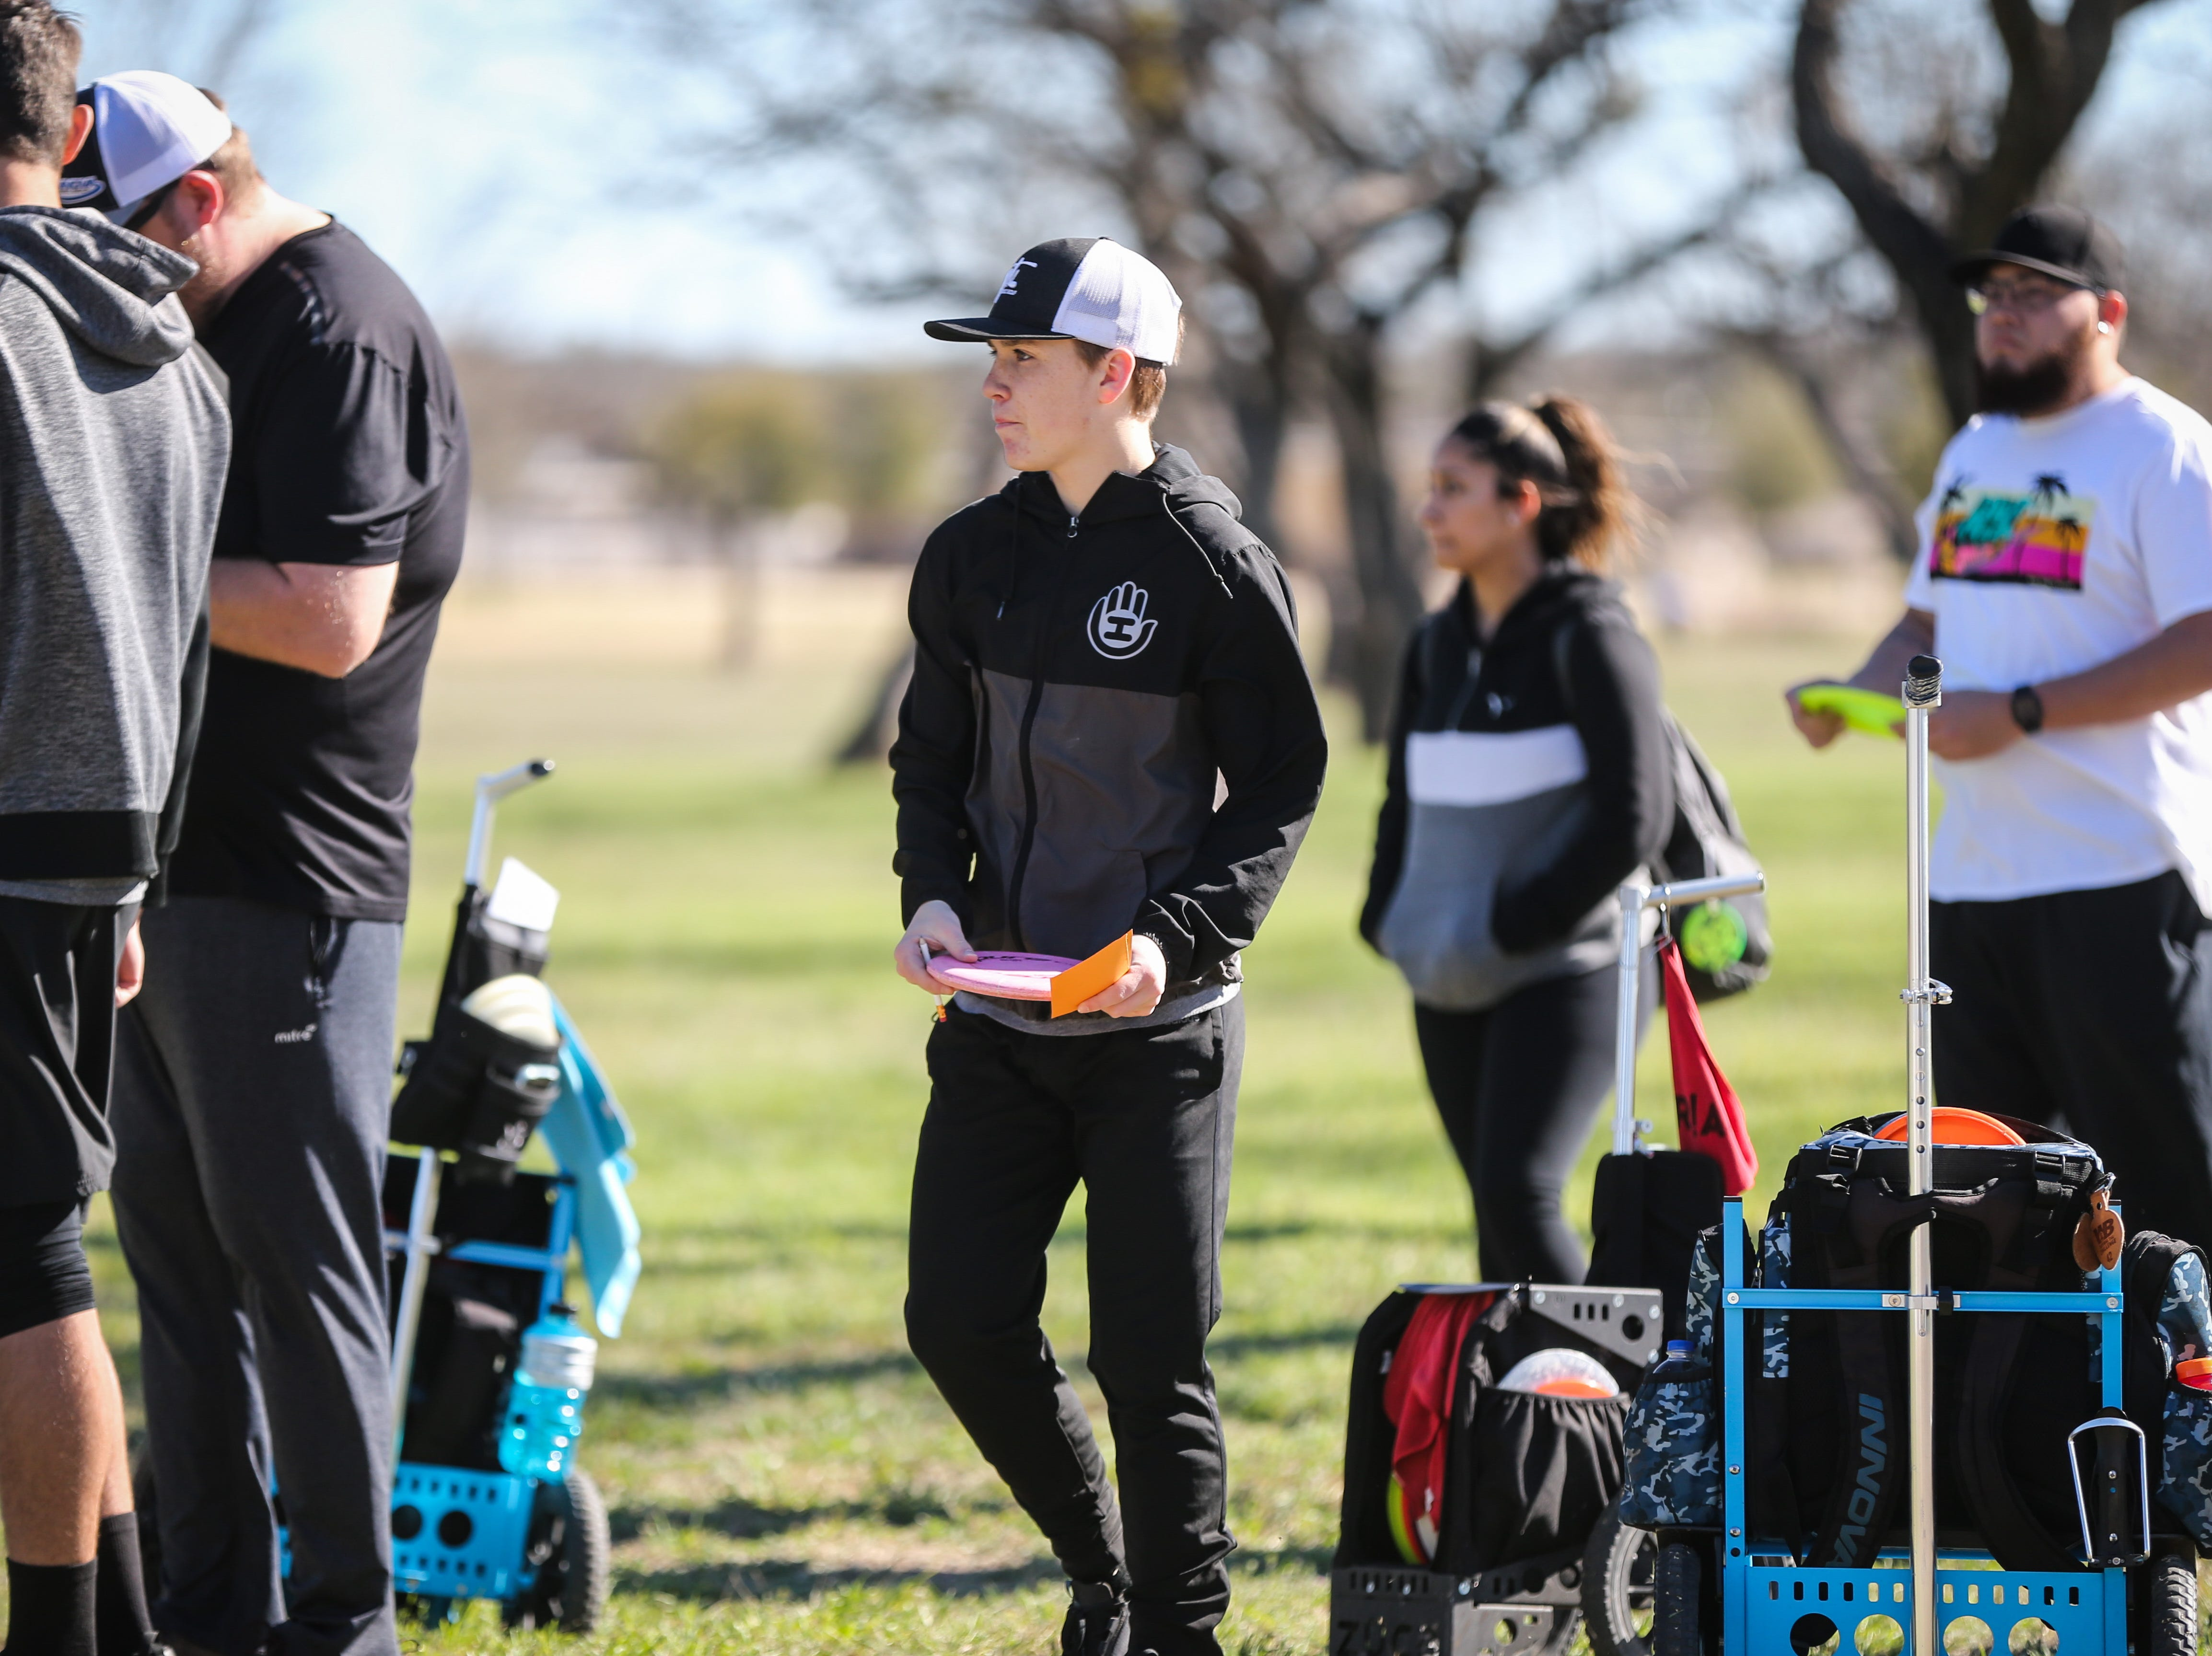 Participants get ready for the next hole during the Crush on the Concho tournament Saturday, March 9, 2019, at Middle Concho Park.